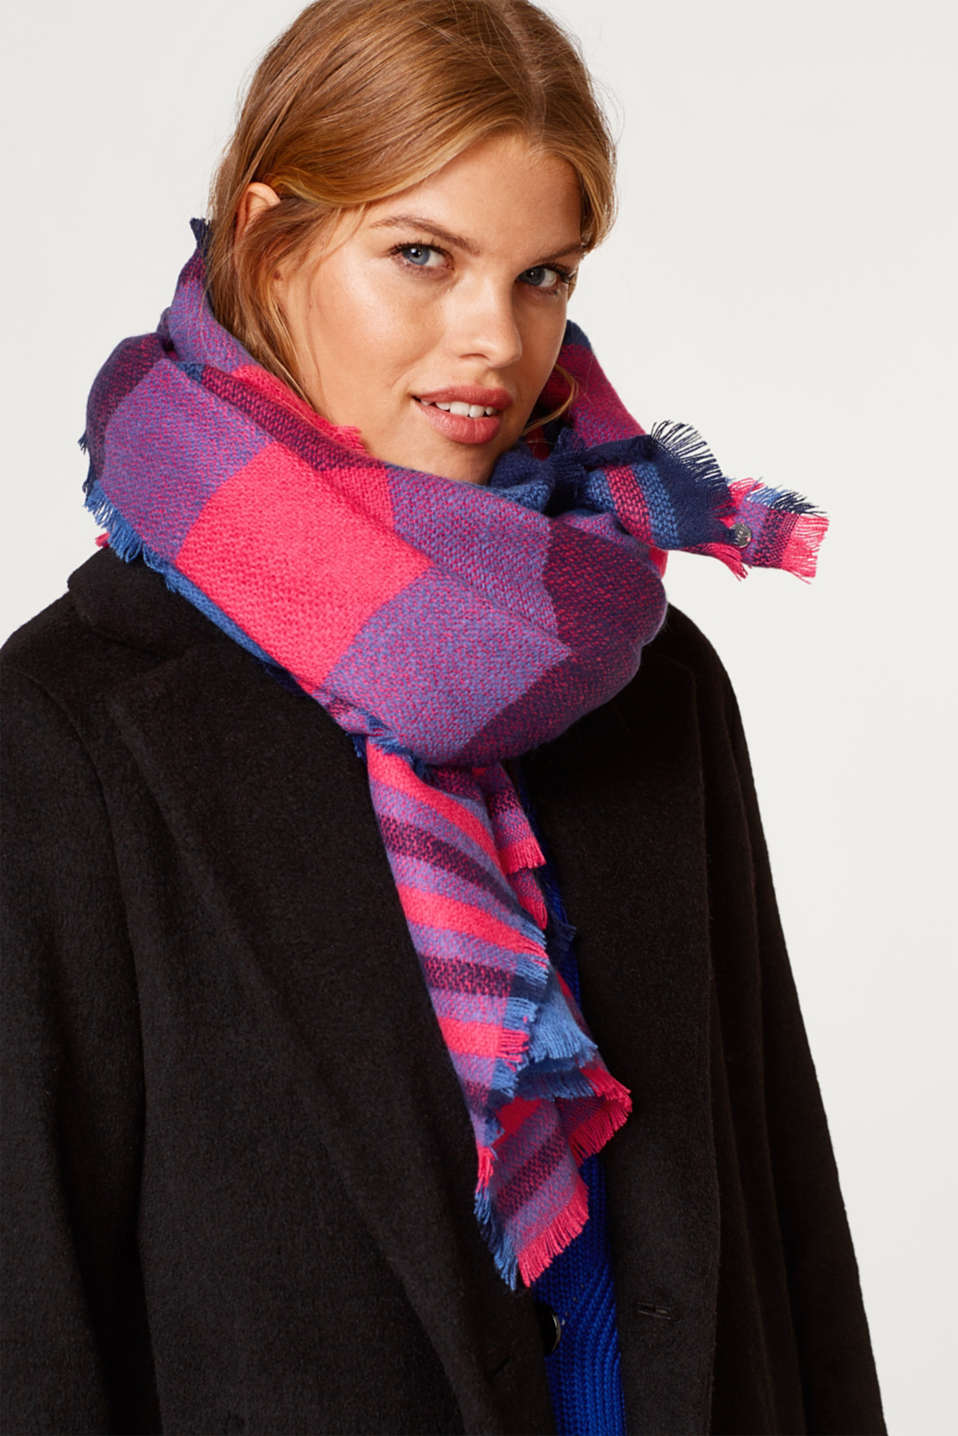 Woven scarf with a check pattern